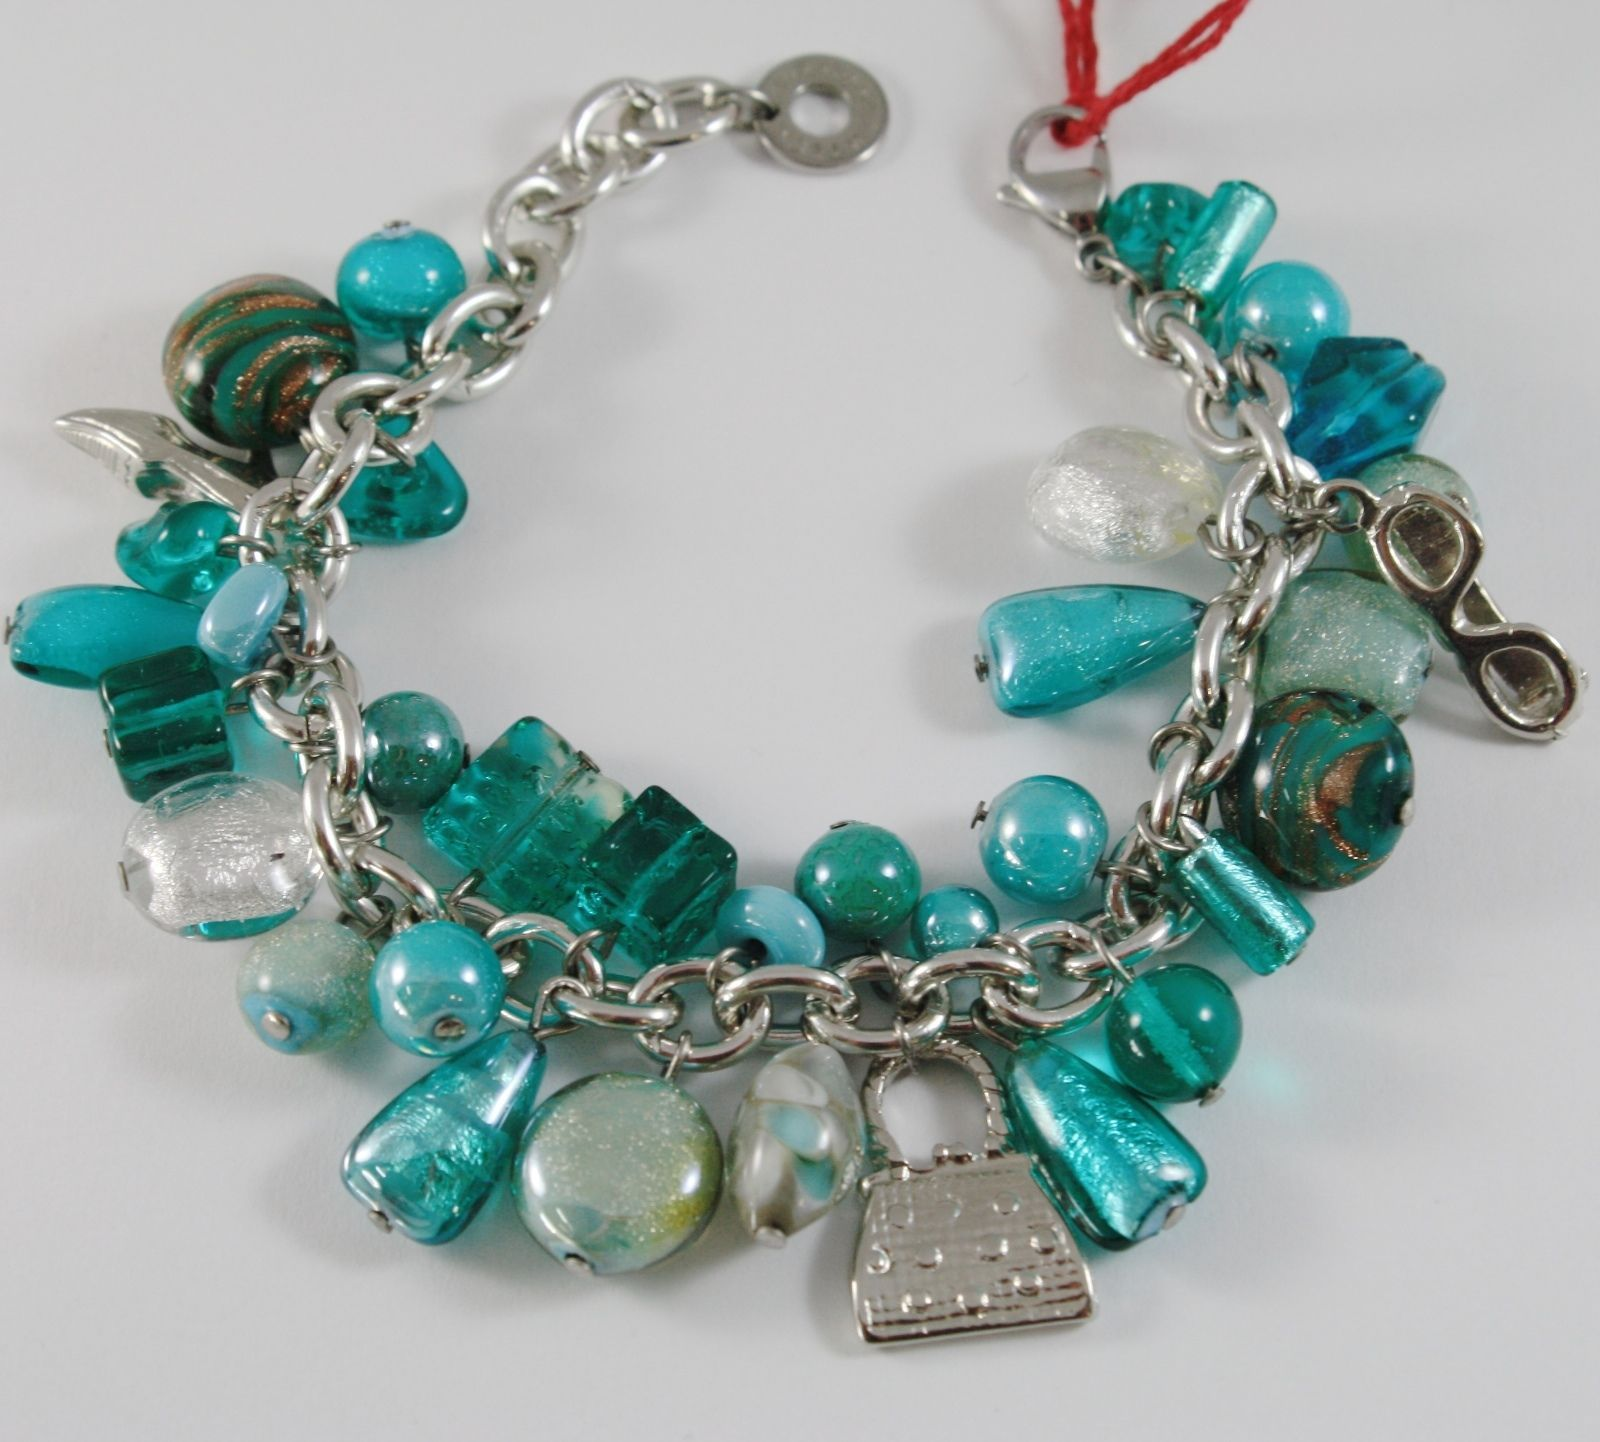 ANTICA MURRINA VENEZIA MARILENA BRACELET GREEN AND EMERALD PENDANTS CHARMS